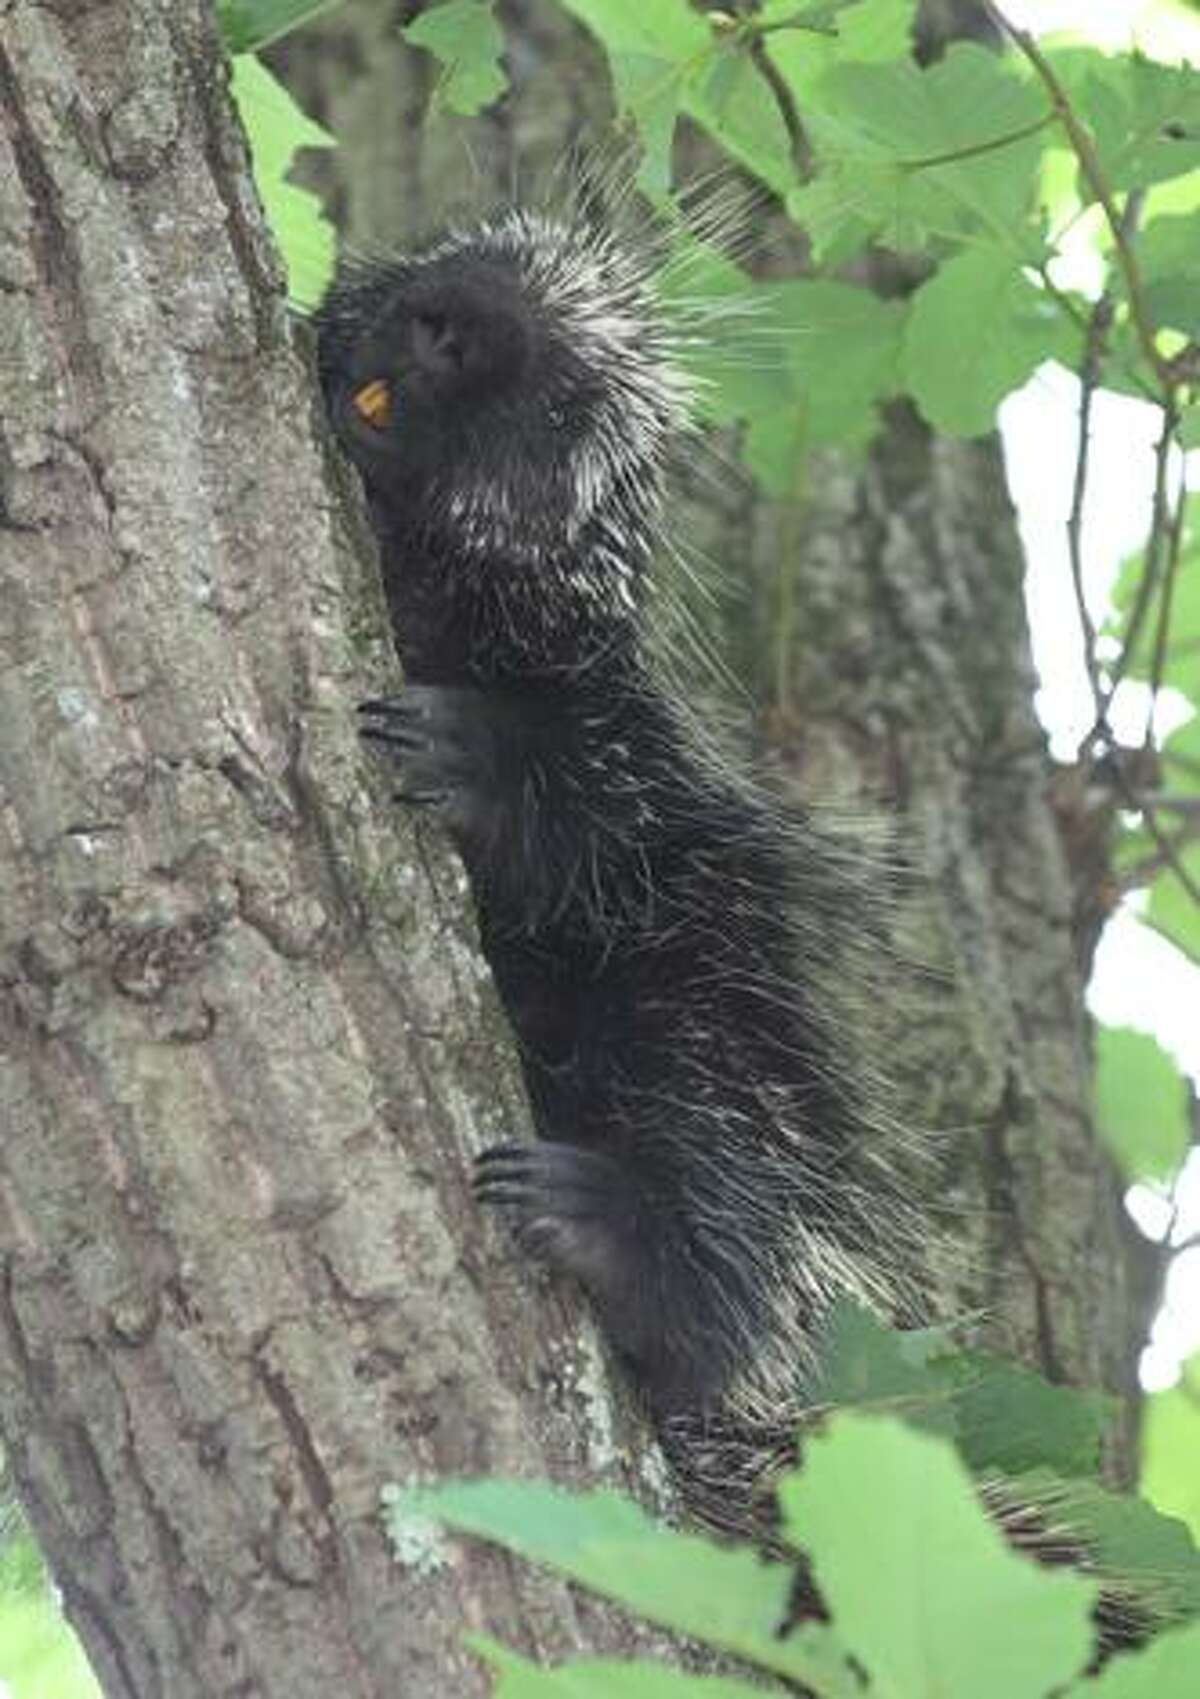 Photos courtesy of Marianne Killackey Photographer Marianne Killackey saw this porcupine in a tree in her yard on Hoerle Boulevard on the west end of Torrington on Friday, and couldn't resist taking photos of him.